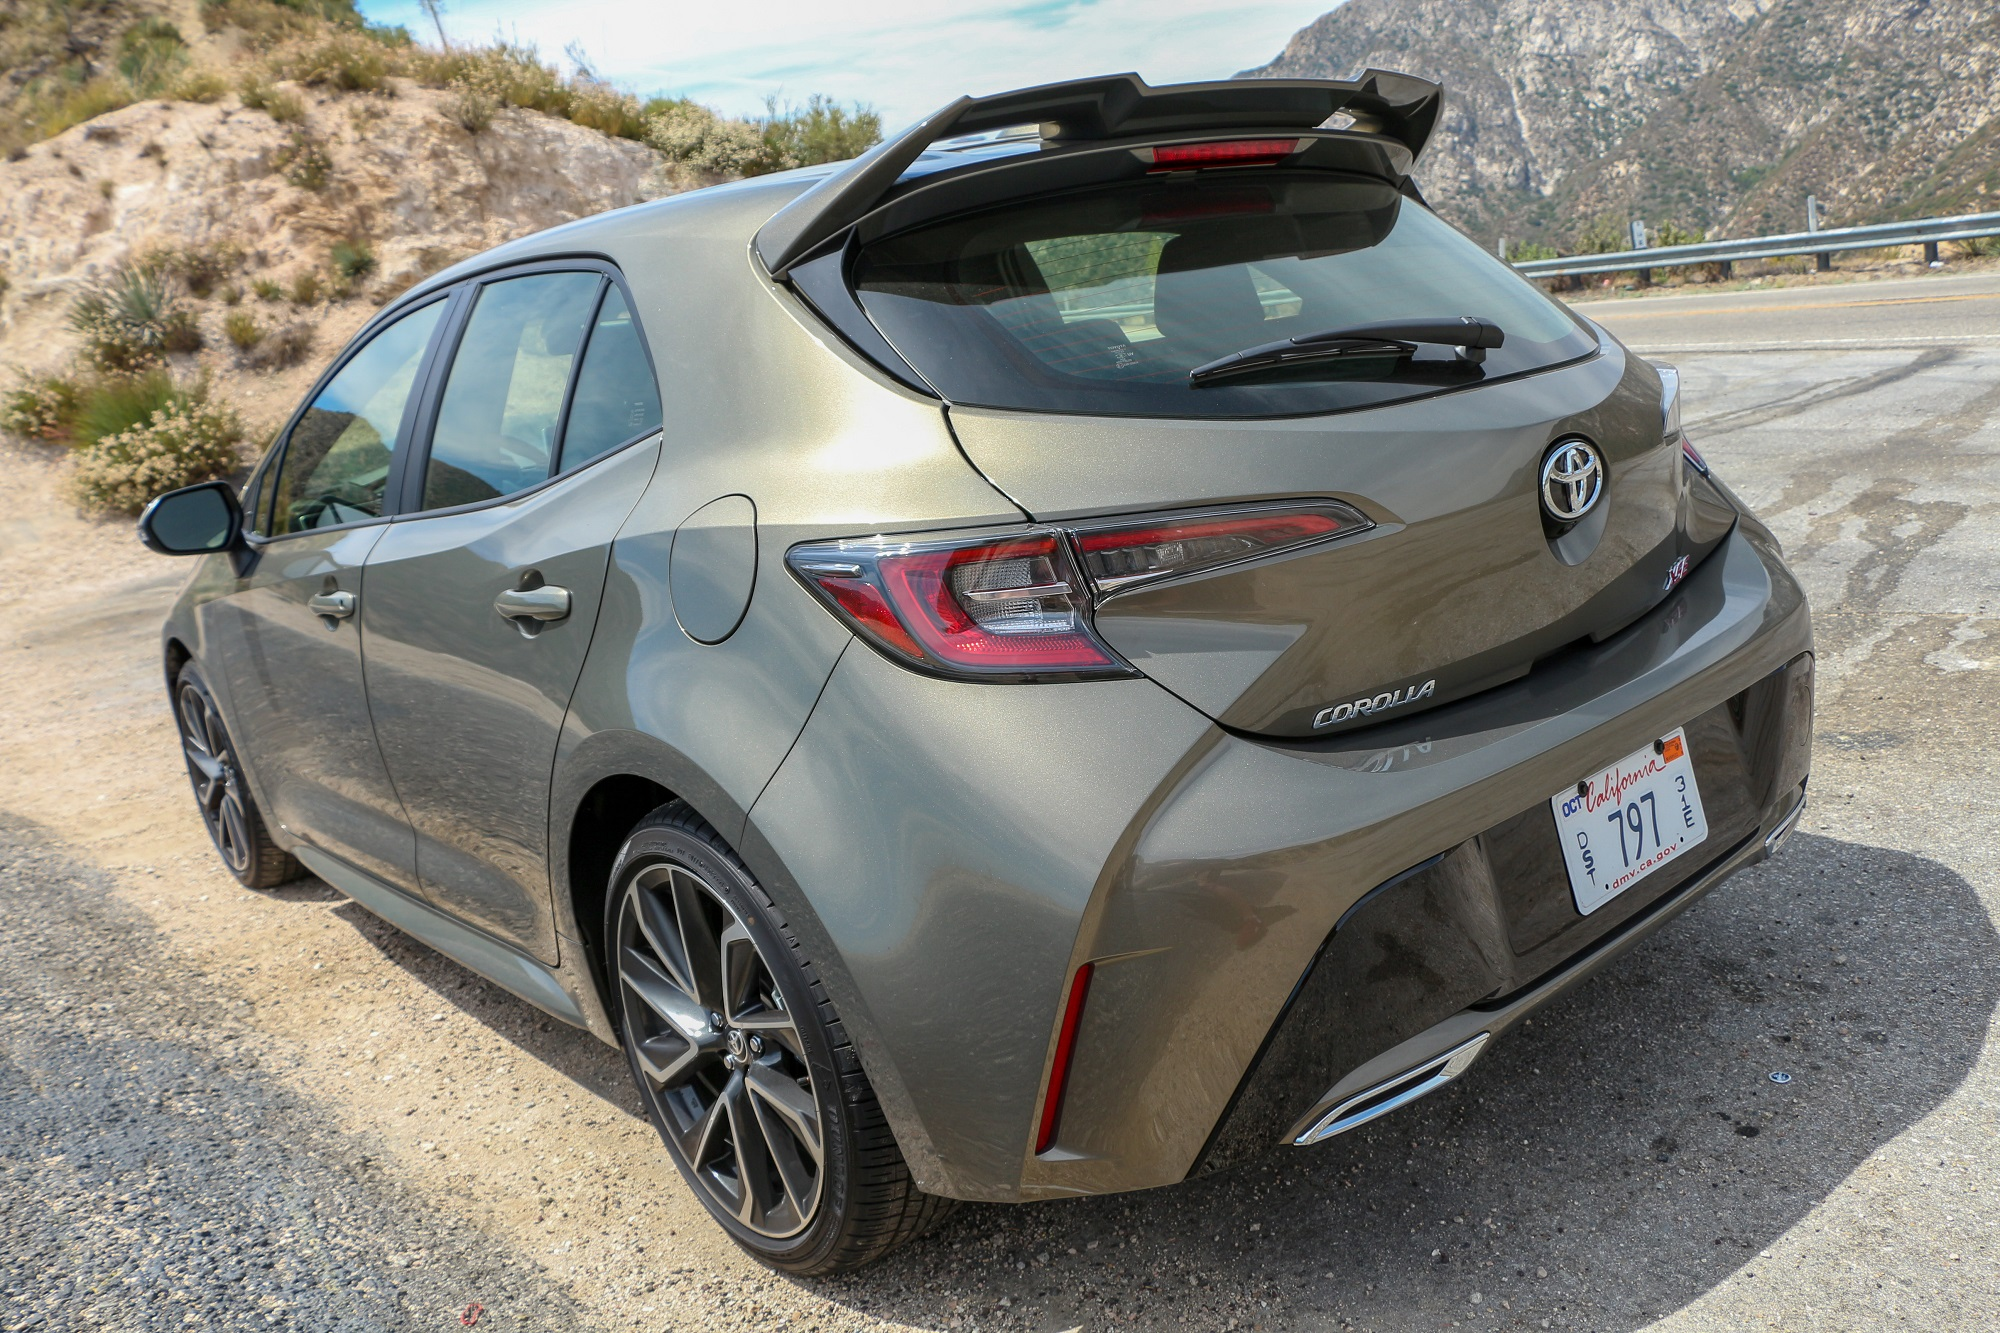 2019 Toyota Corolla Hatchback SE XSE Manual Transmission Interior Exterior Colors Bronze Oxide Engine EnTune Features Review News Comparison Honda Civic Sport Mazda3 Scionlife.com